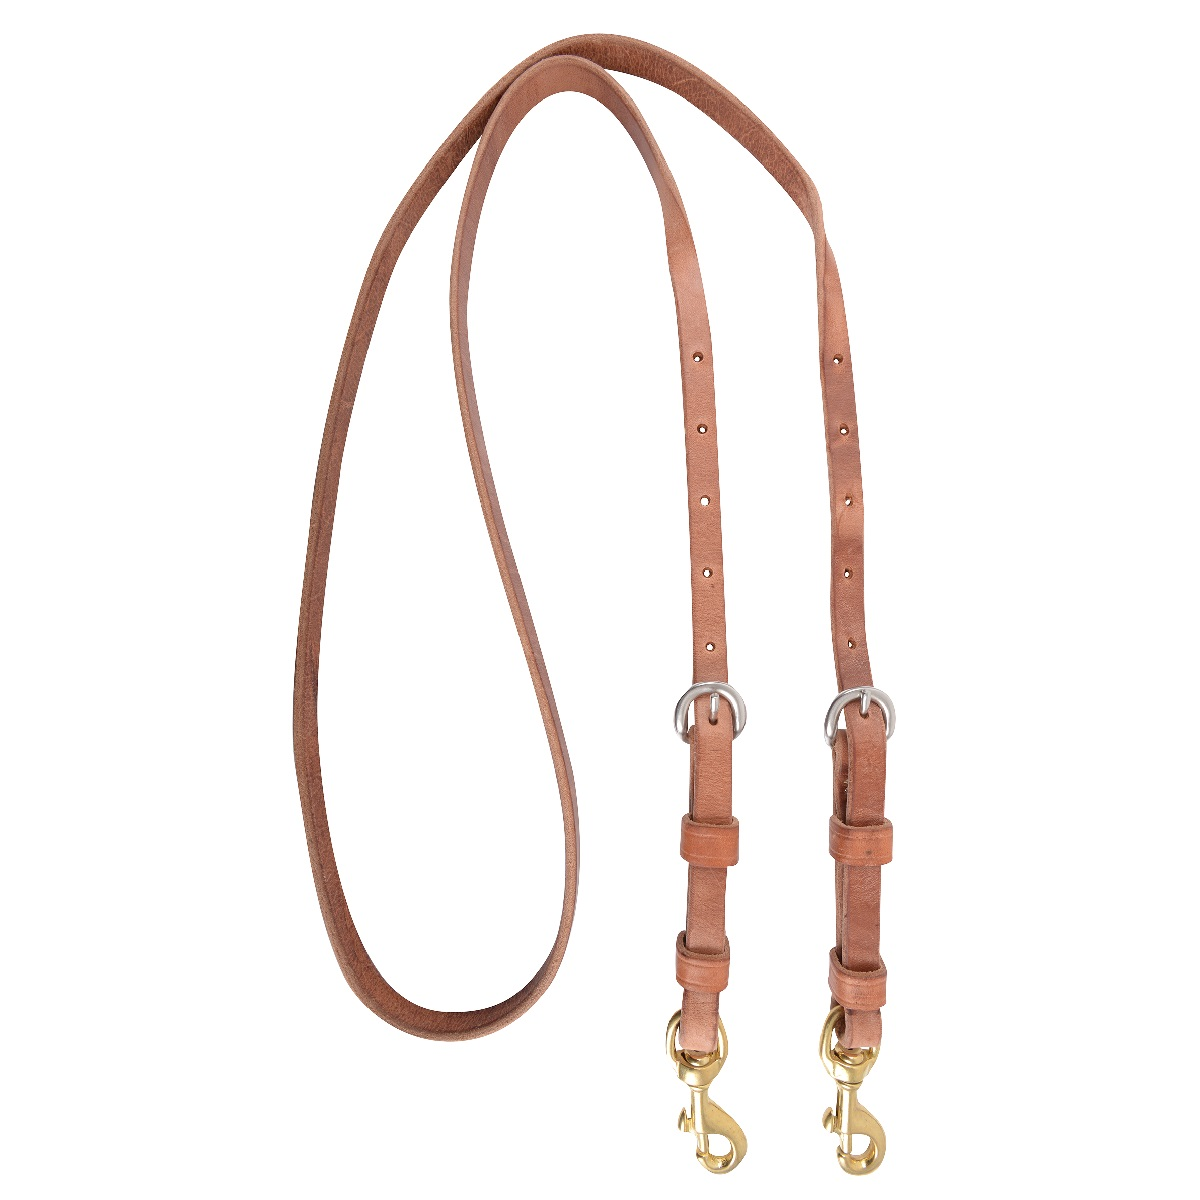 Roping Reins with Double Buckles by Martin Saddlery